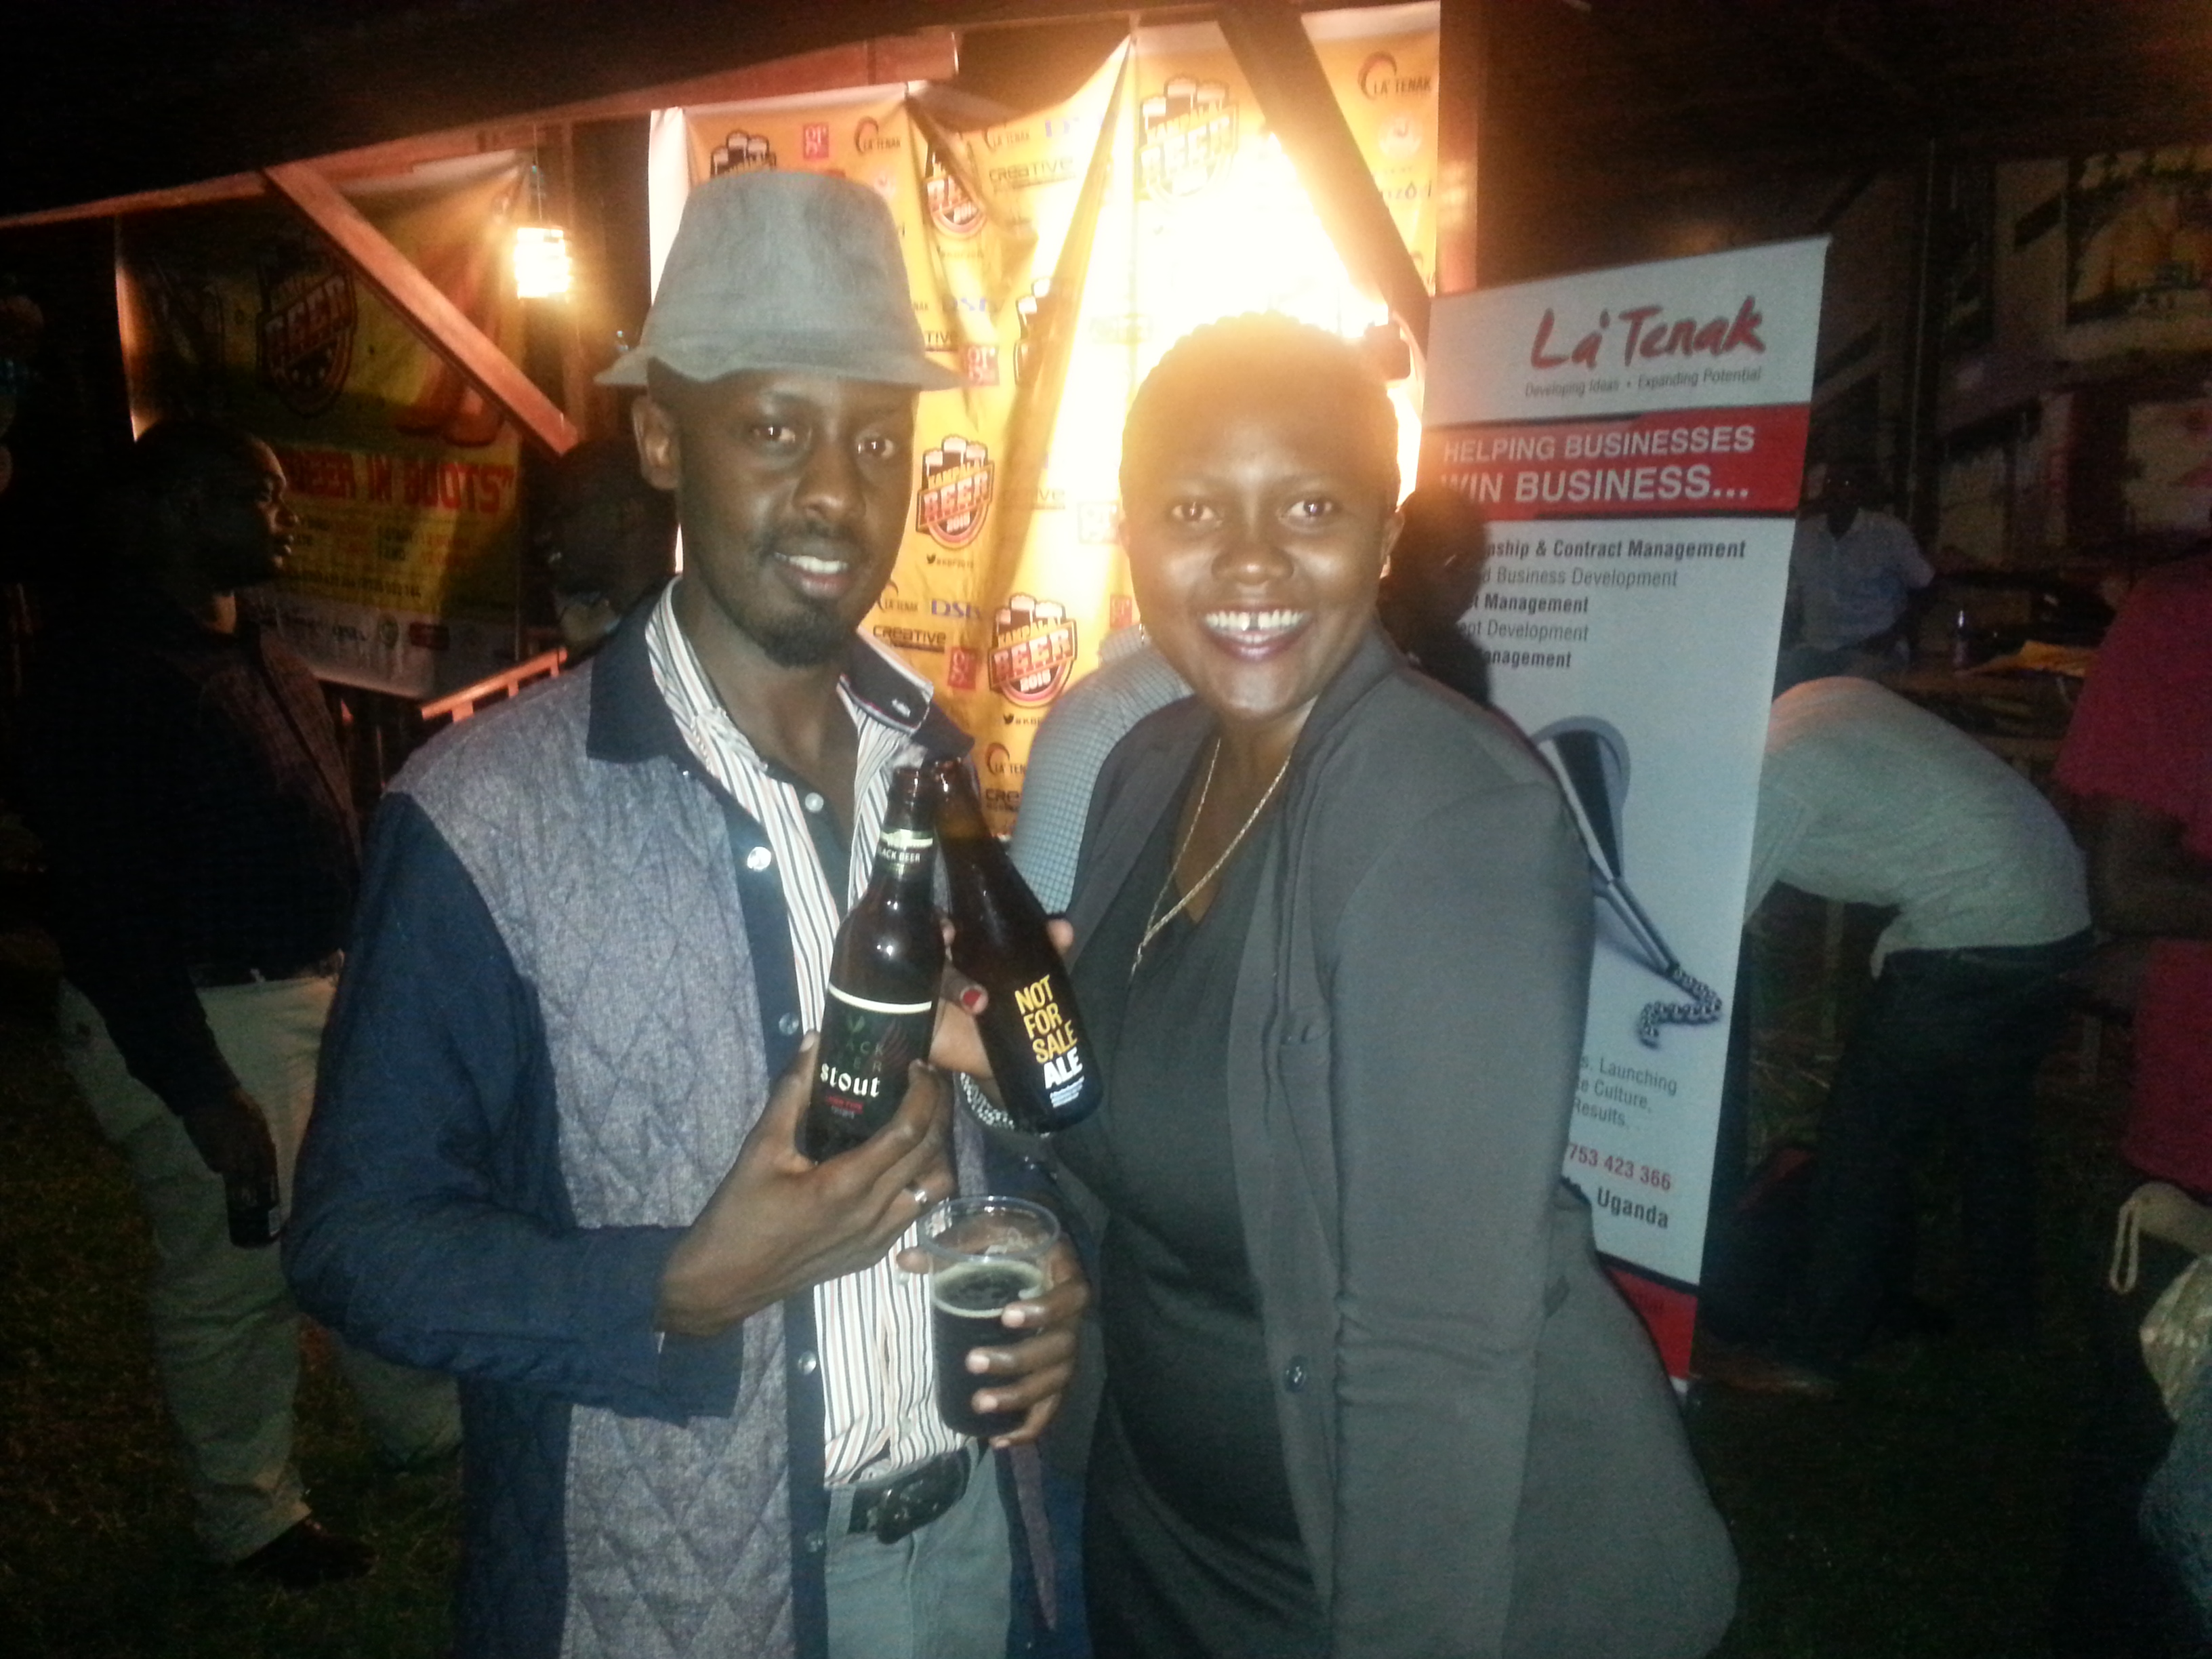 La 'Tenak's Thecla and a colleague at the Kampala Beer Festival launch